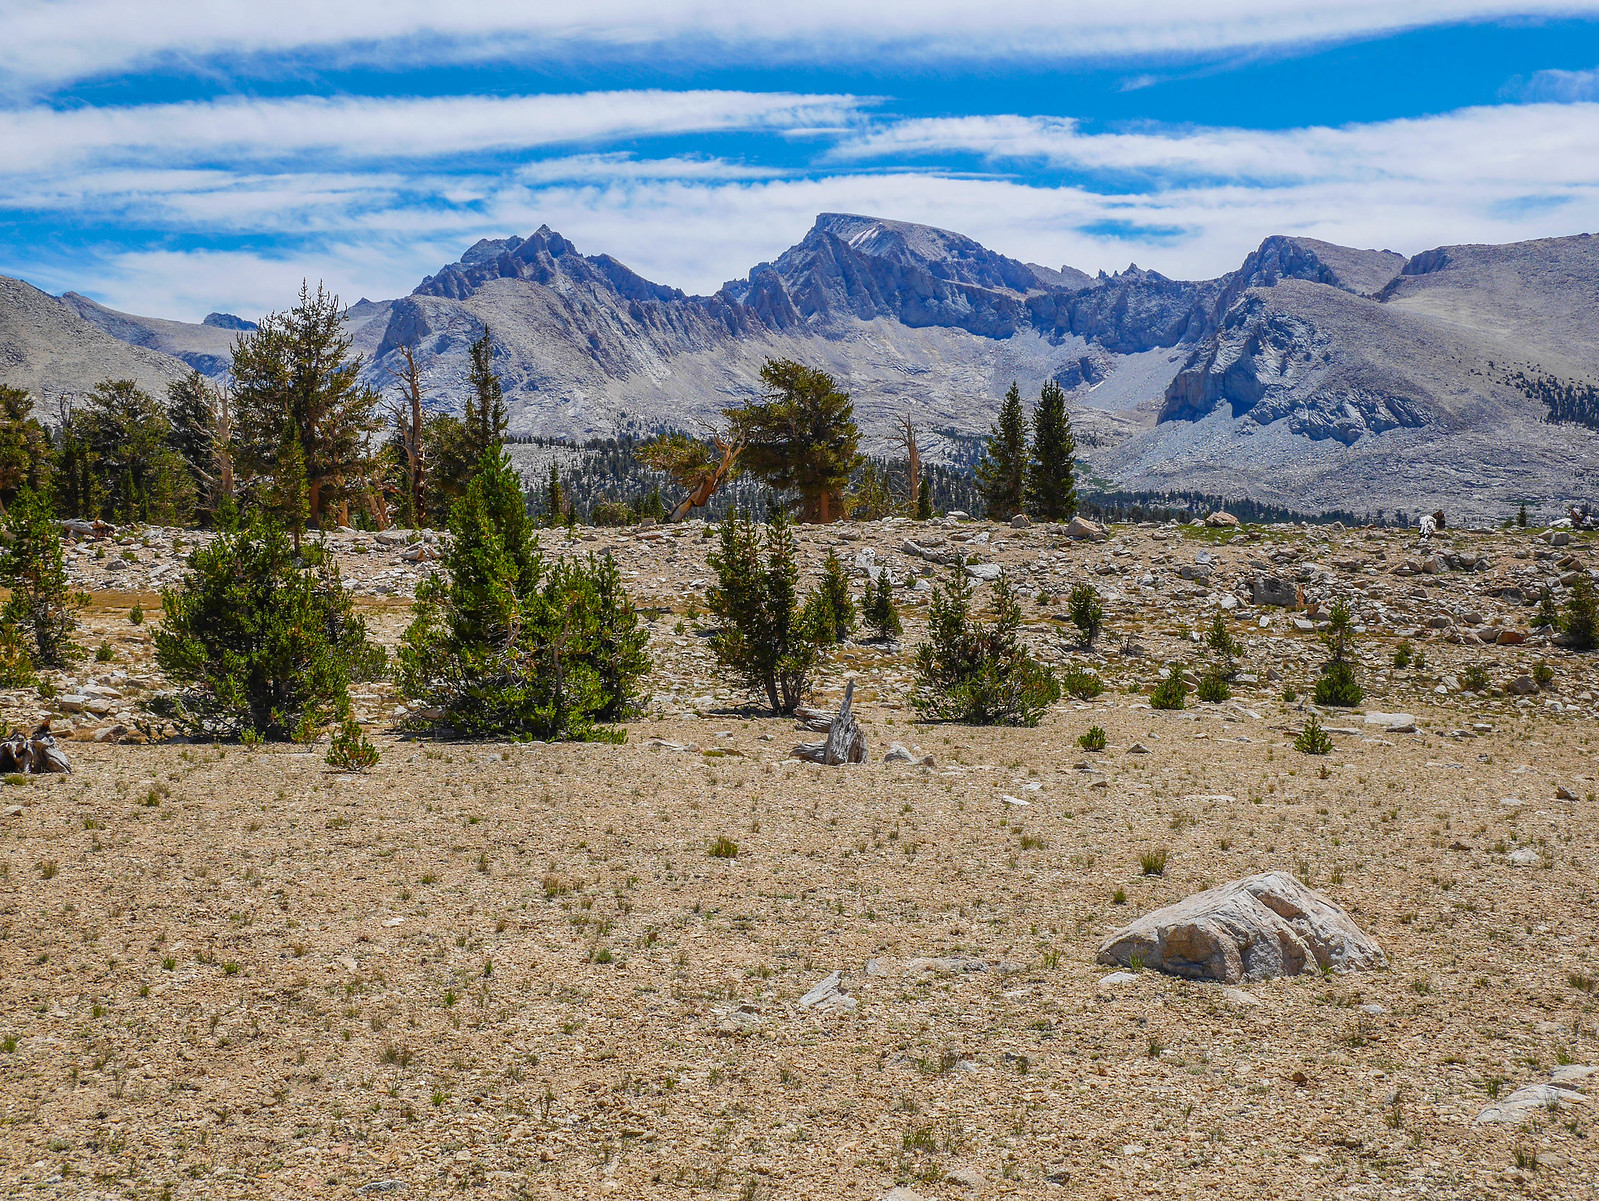 Whitney from the JMT on Bighorn Plateau